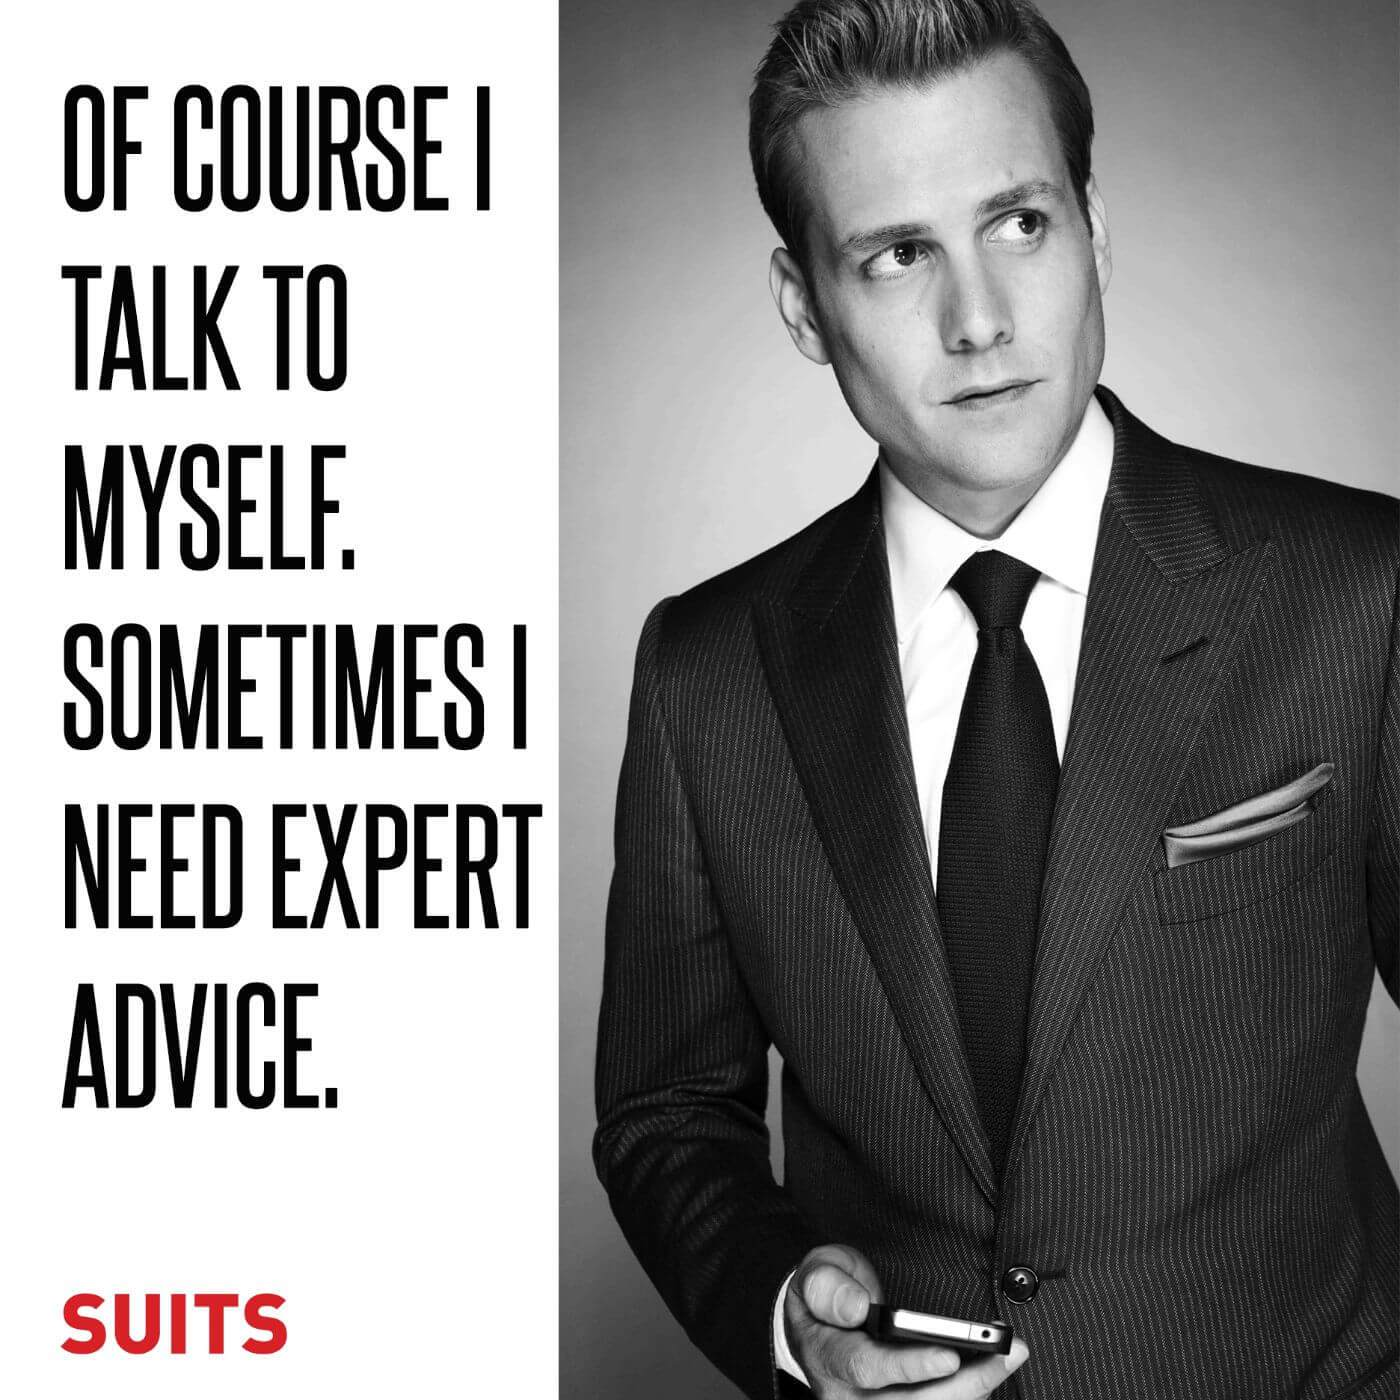 suits of course i talk to myself harvey specter inspirational quote framed prints by tallenge store buy posters frames canvas digital art prints small compact medium and large variants suits of course i talk to myself harvey specter inspirational quote framed prints